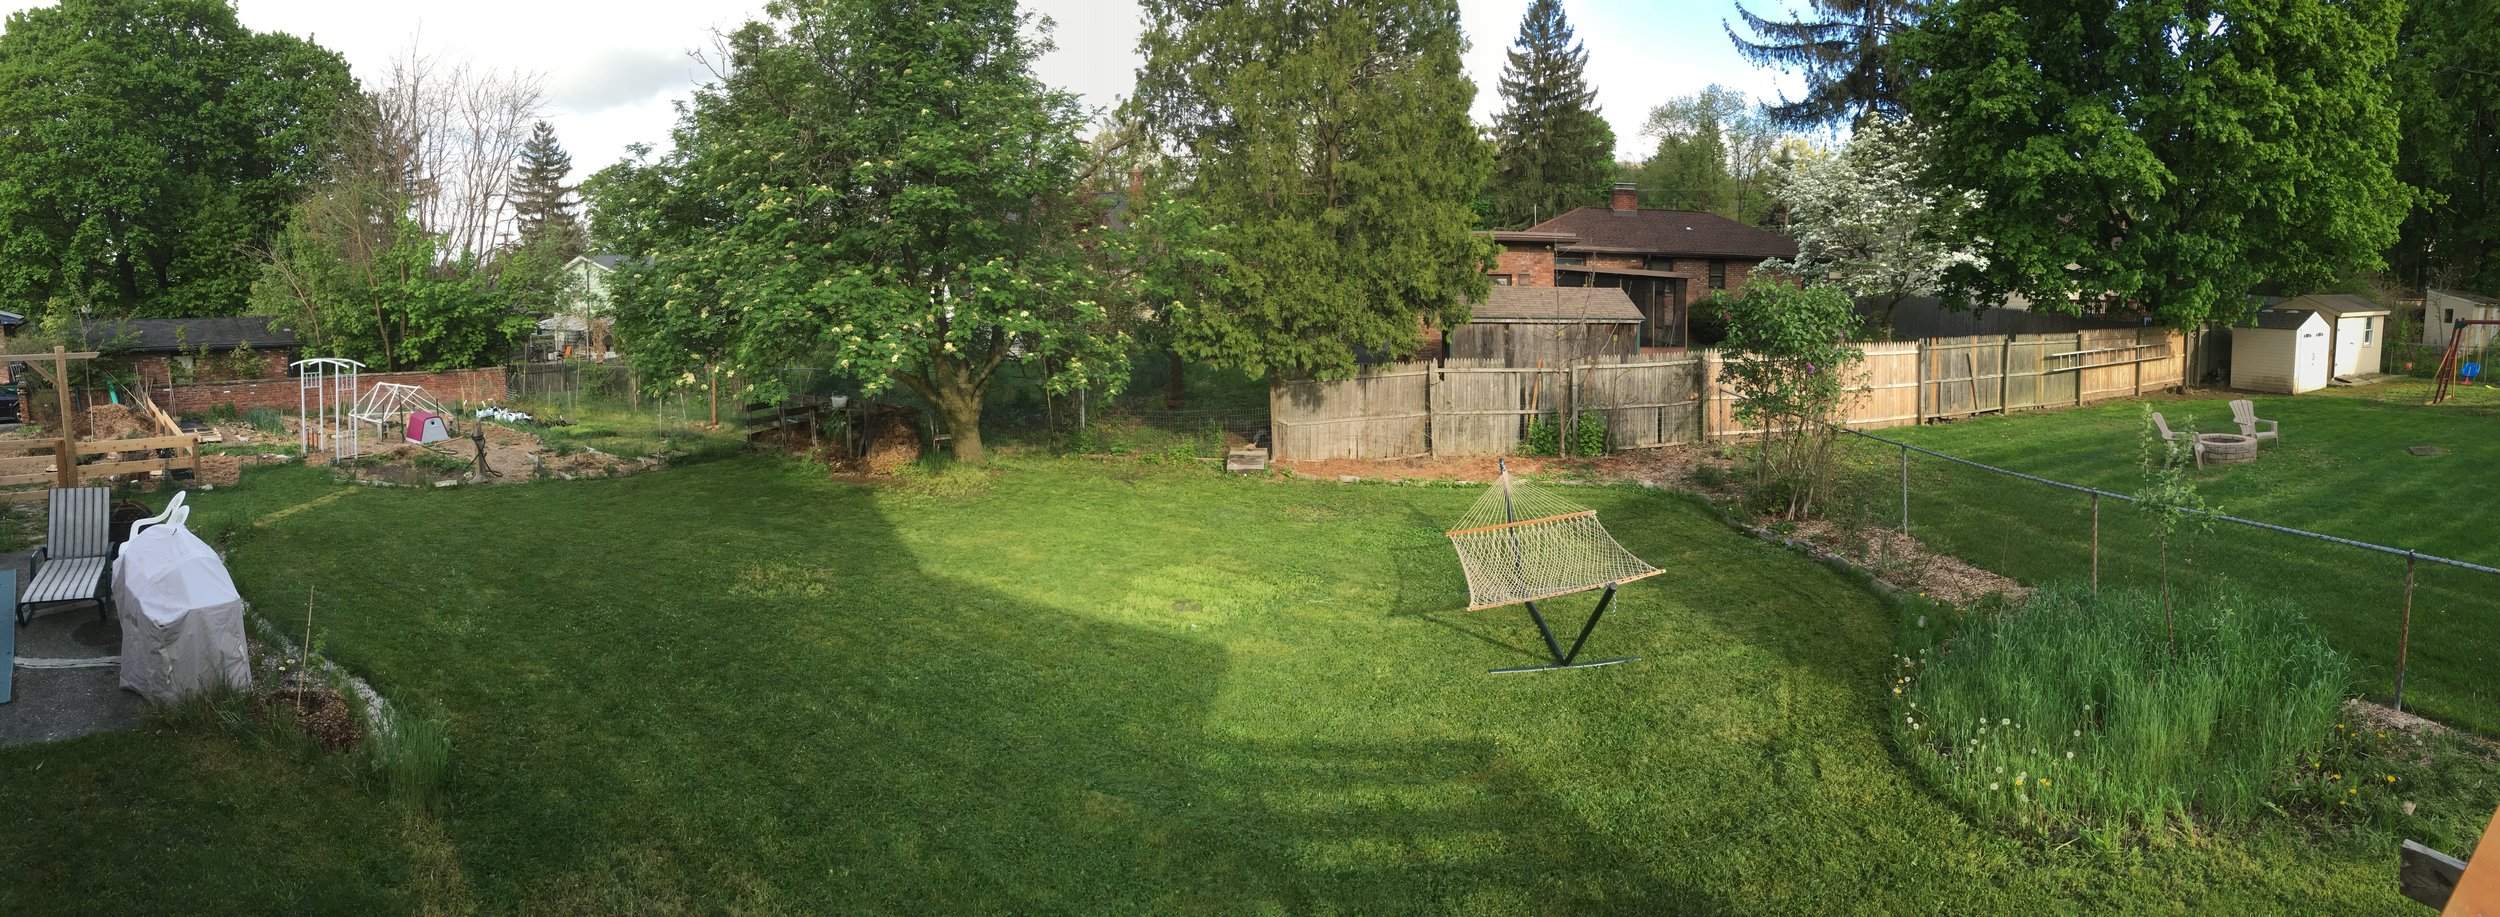 2015 - Late summer backyard view from Deck